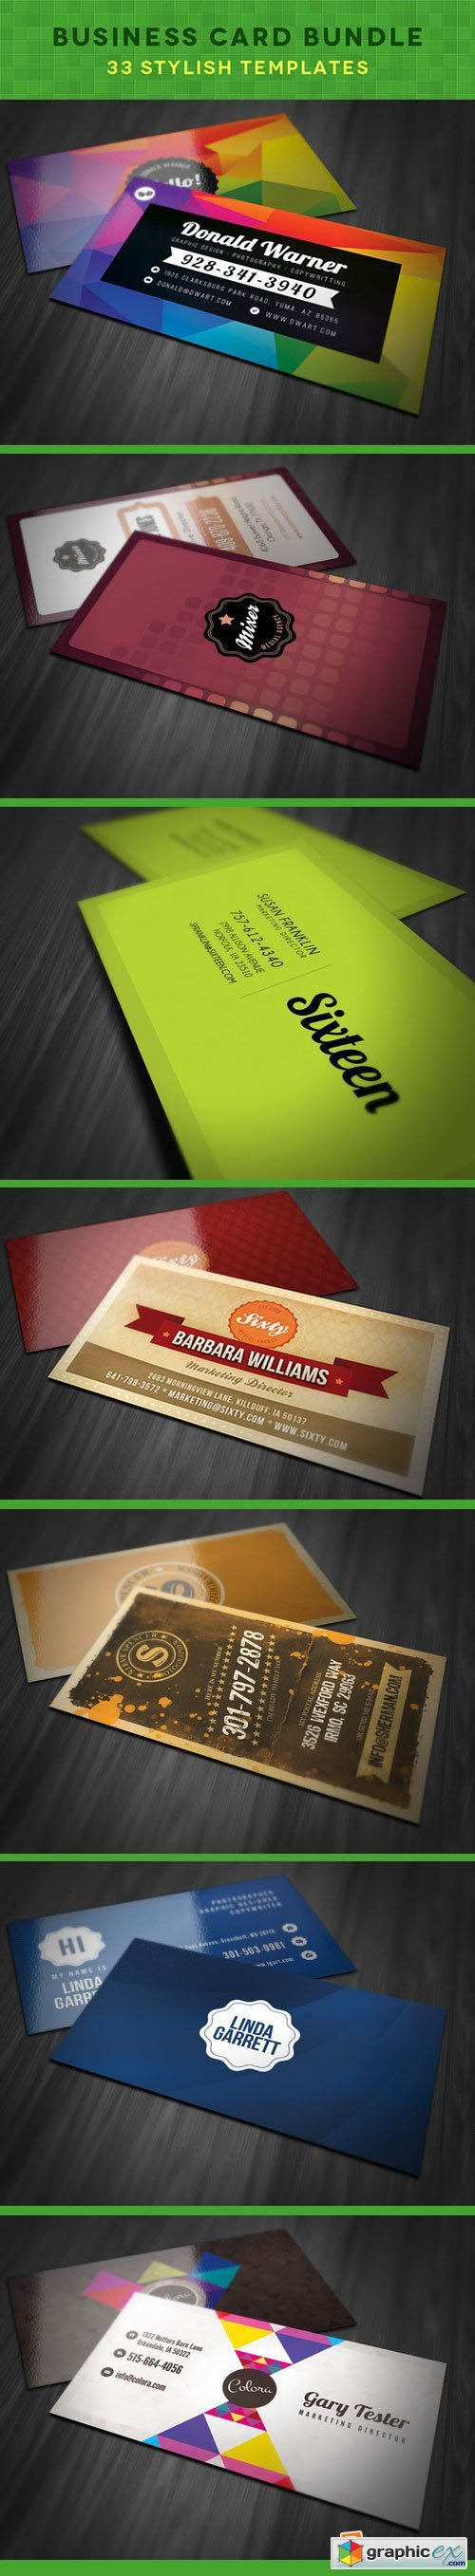 Business Card Bundle: 33 Stylish Templates